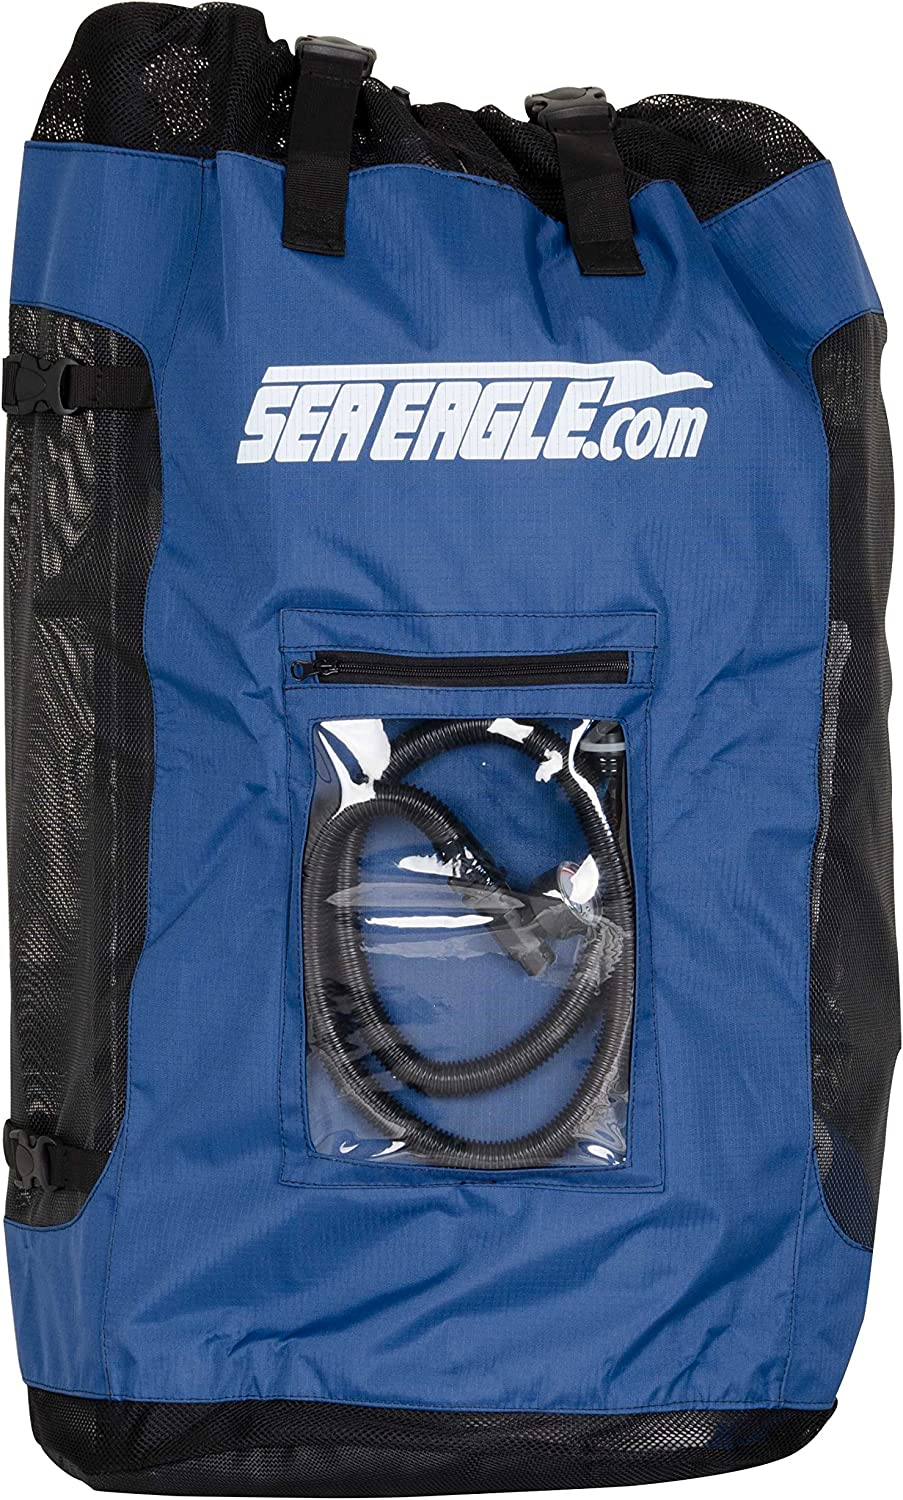 All Purpose Backpack, Storage Bag, Carry Bag, and Outdoor Gear Bag